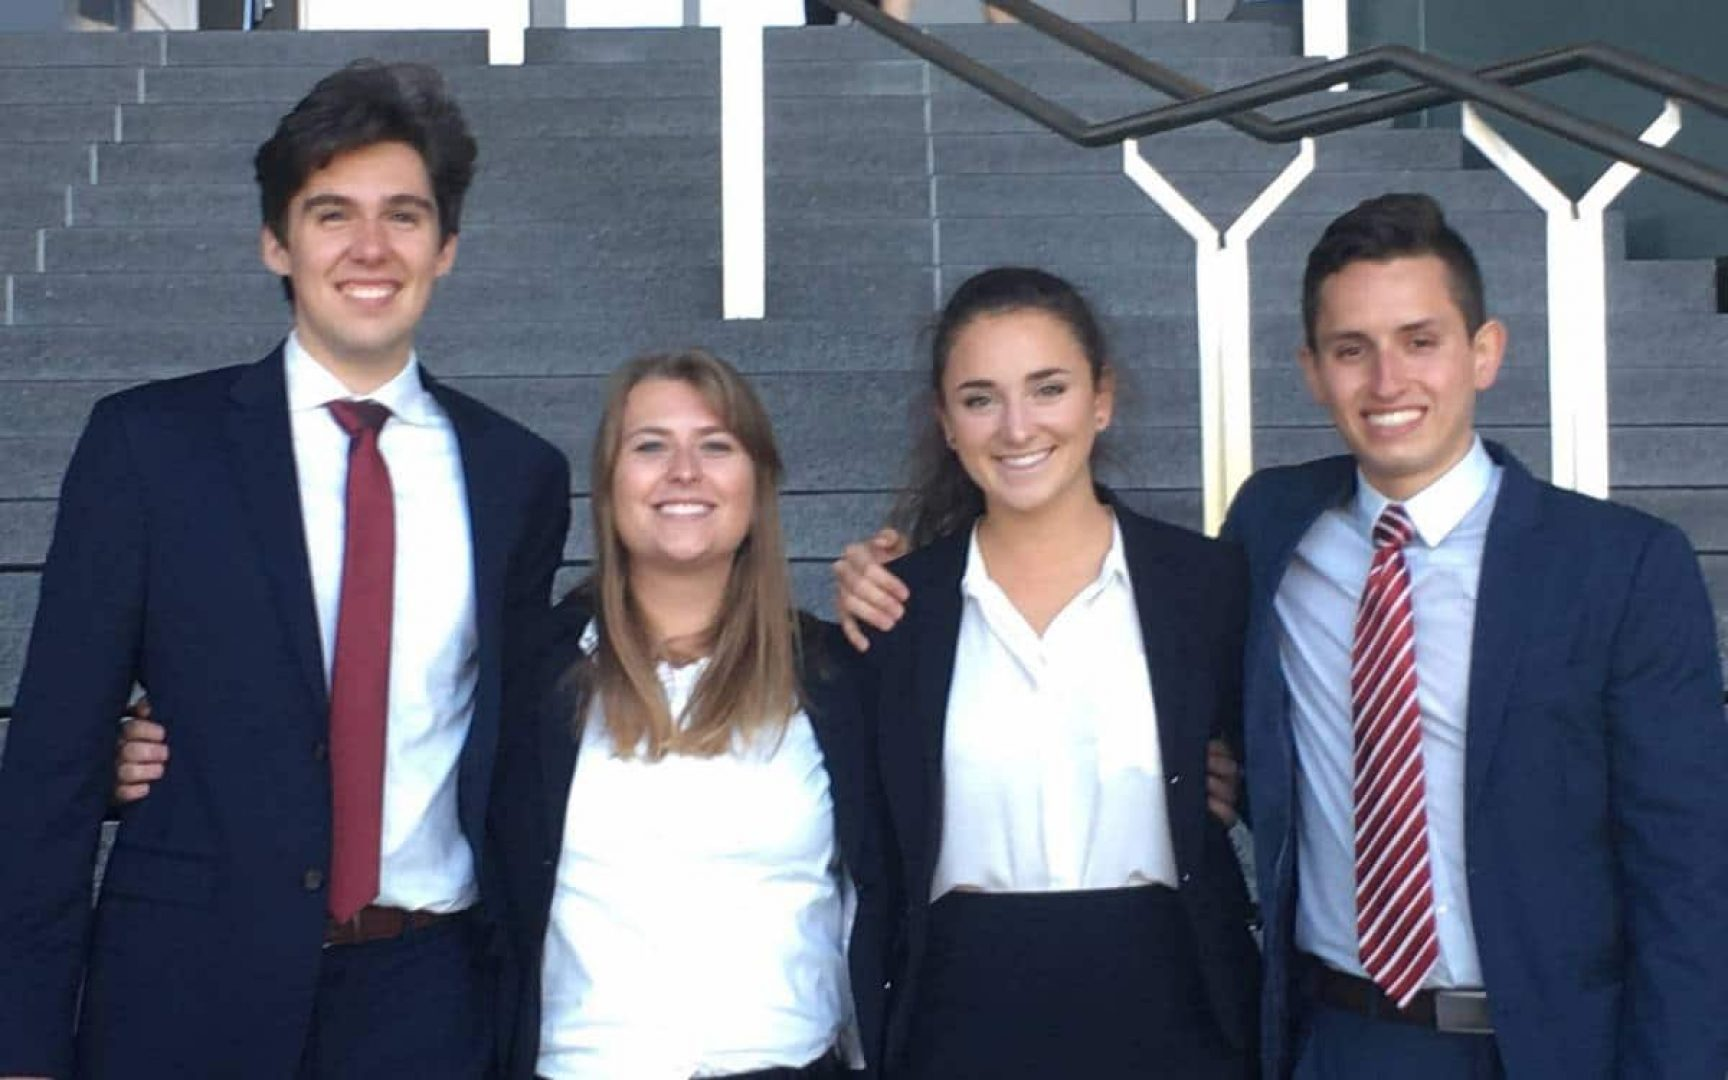 Four students pose for a photo at a case competition